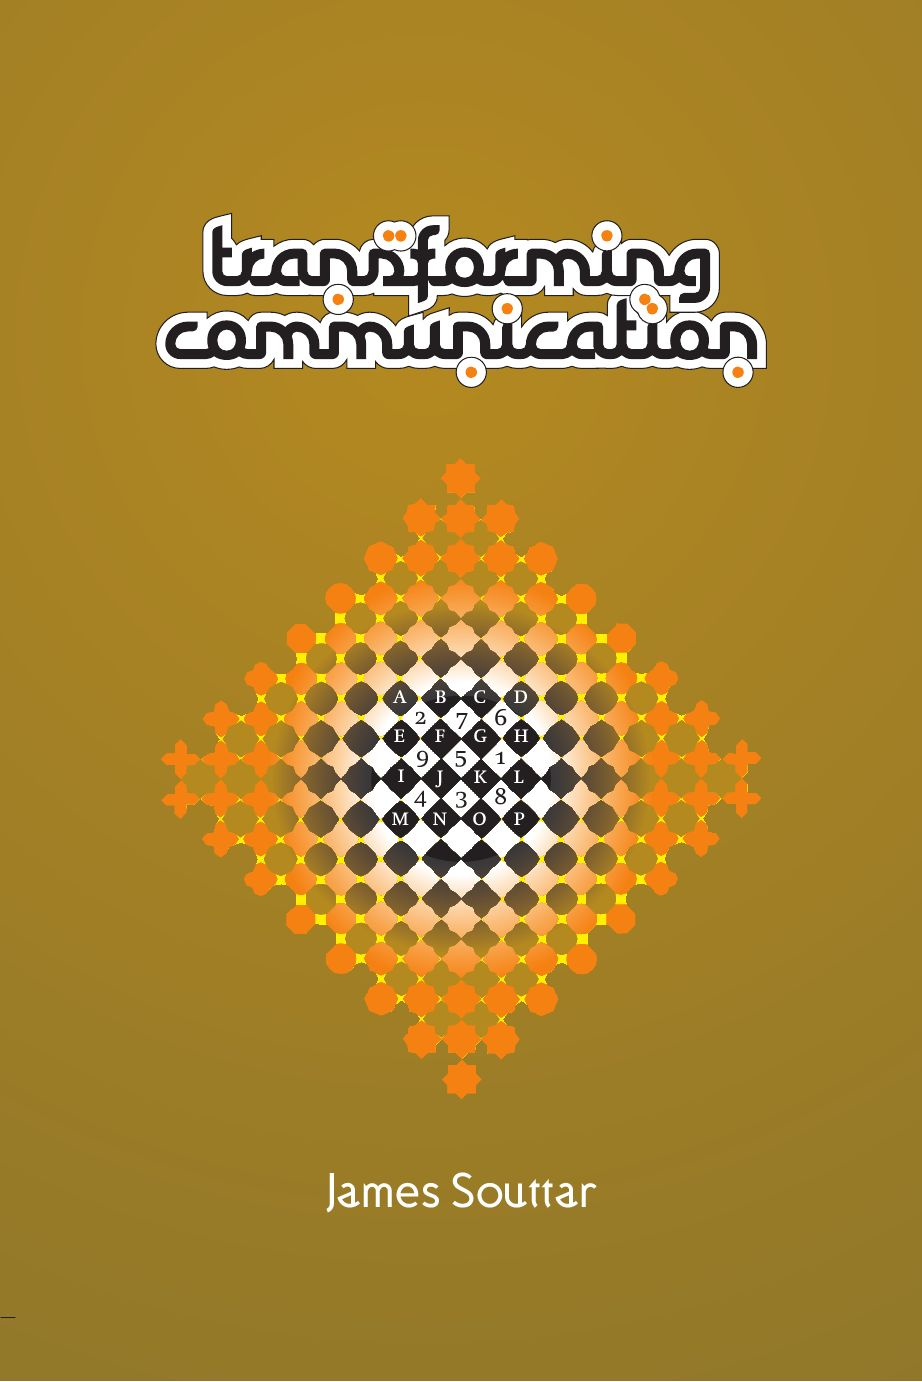 Transforming Communication by James Souttar - issuu